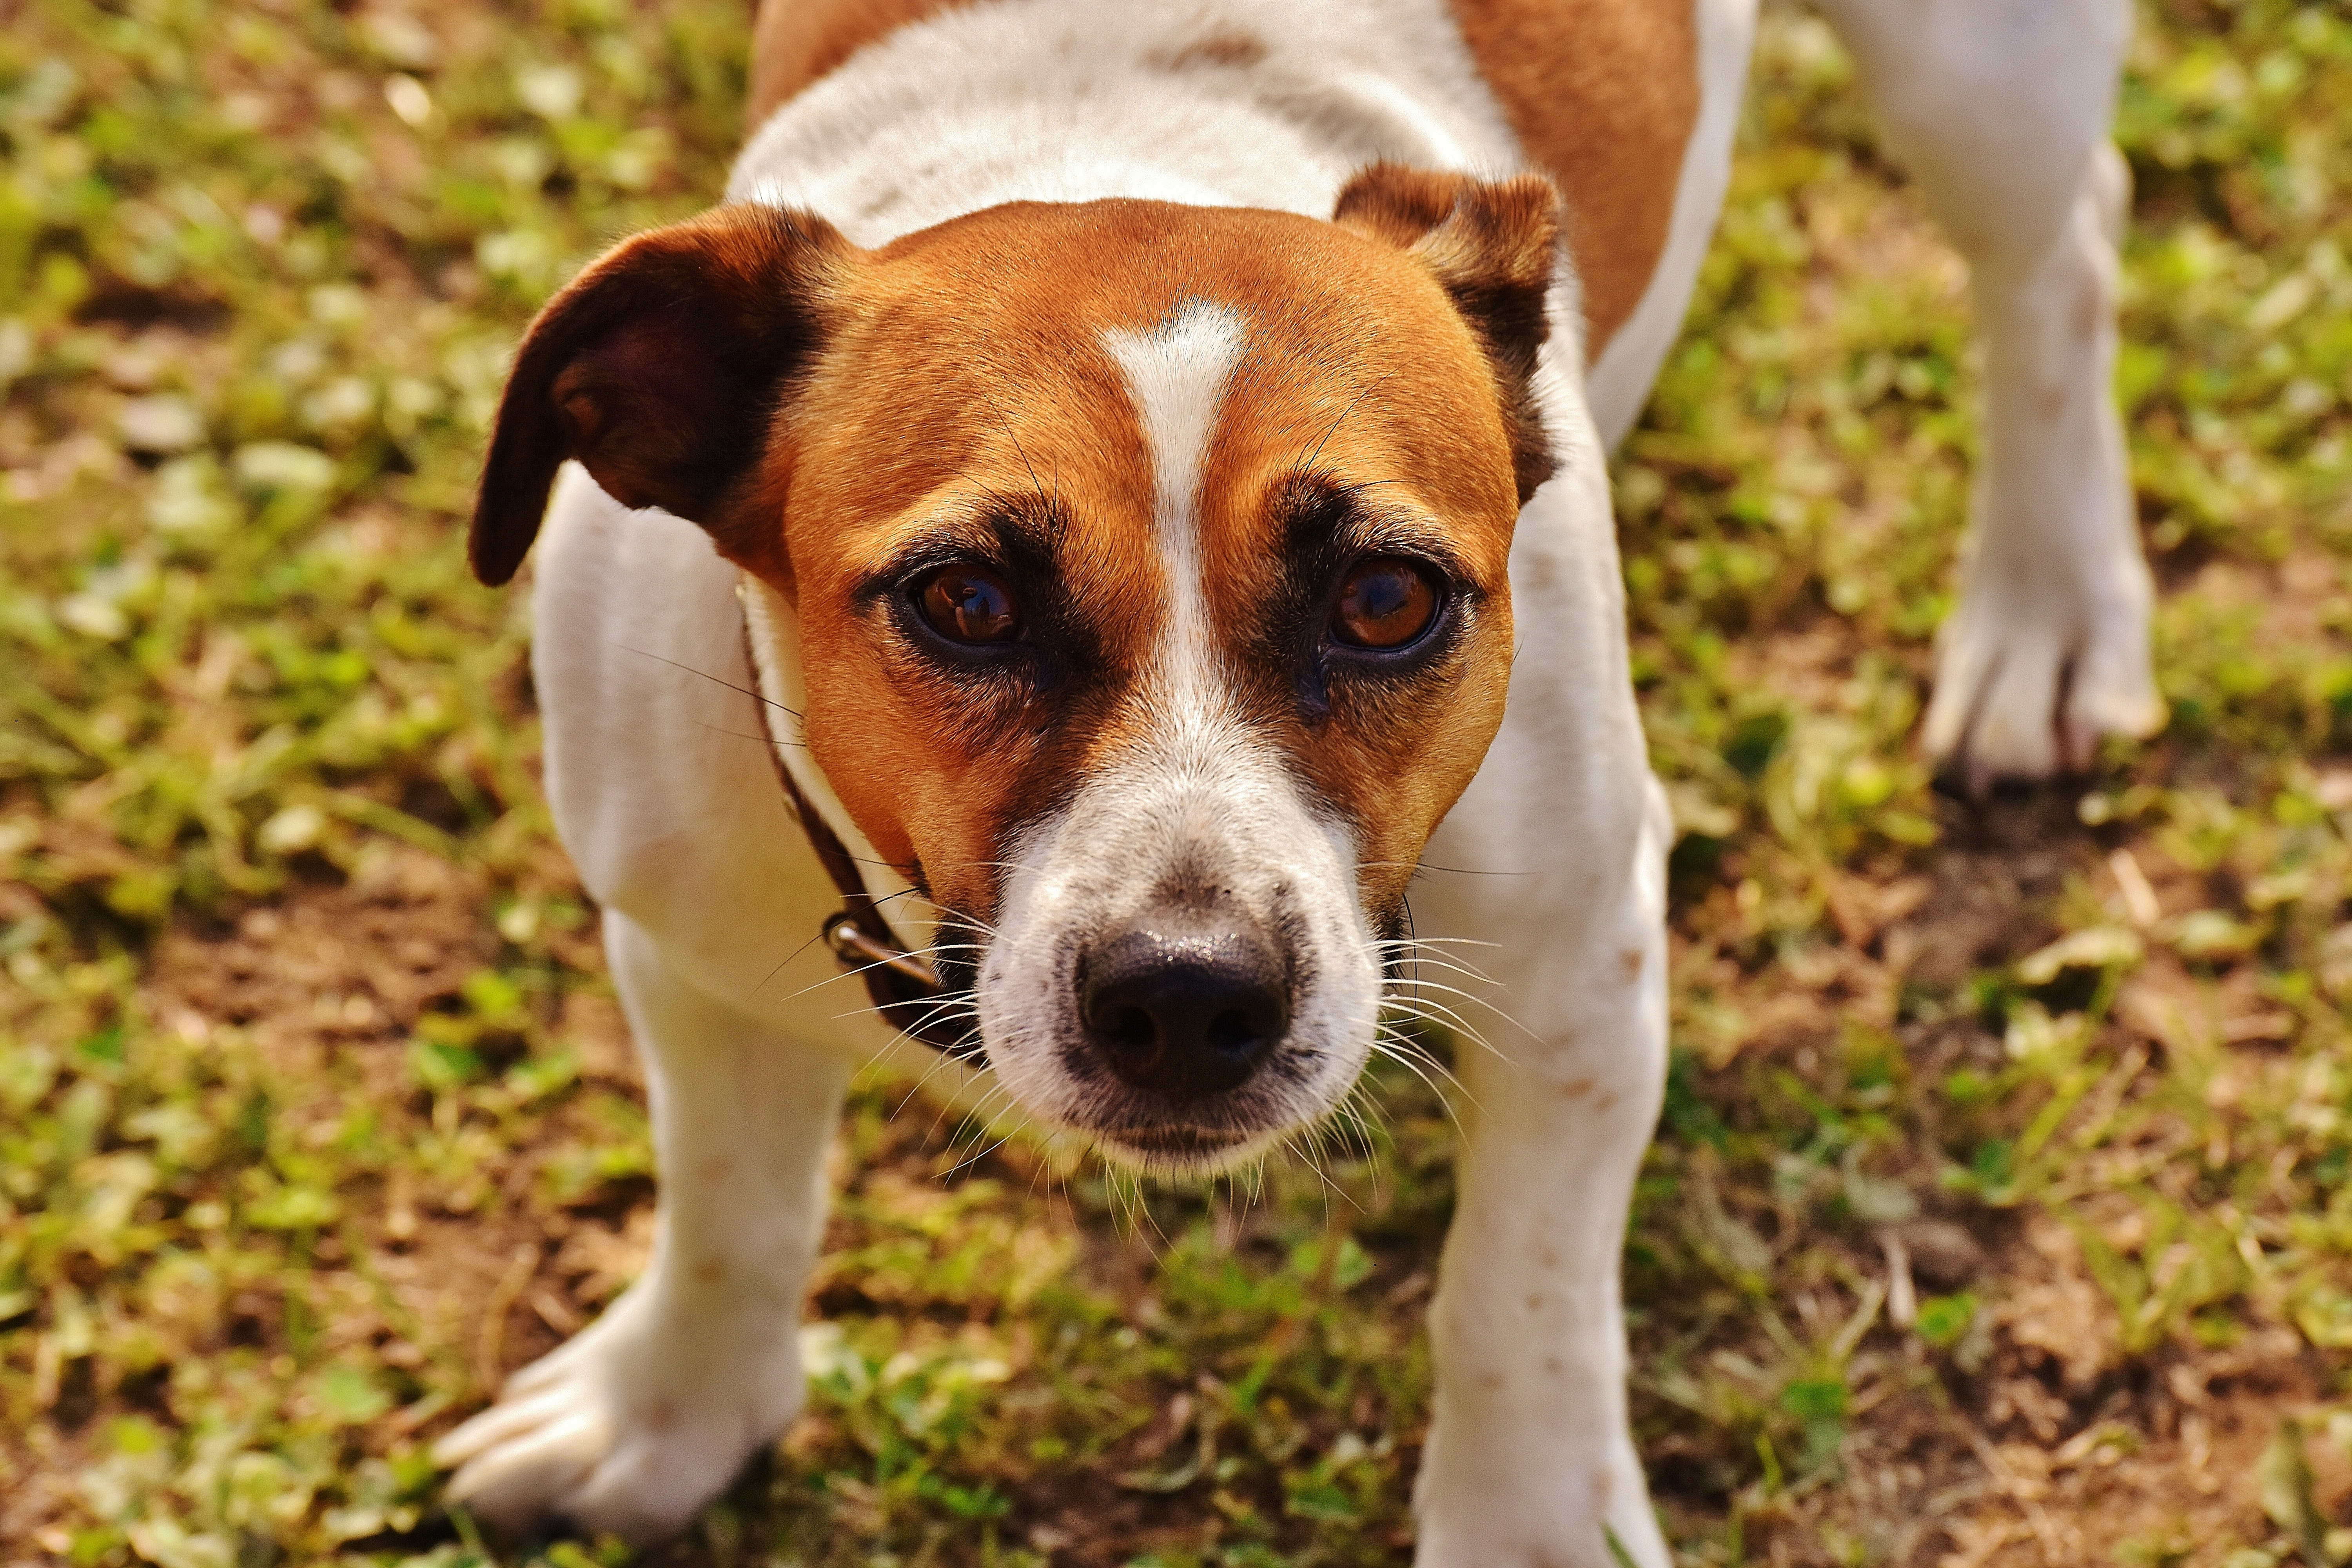 Brown and White Jack Russell Terrier, Looking, Young, Terrier, Purebred, HQ Photo